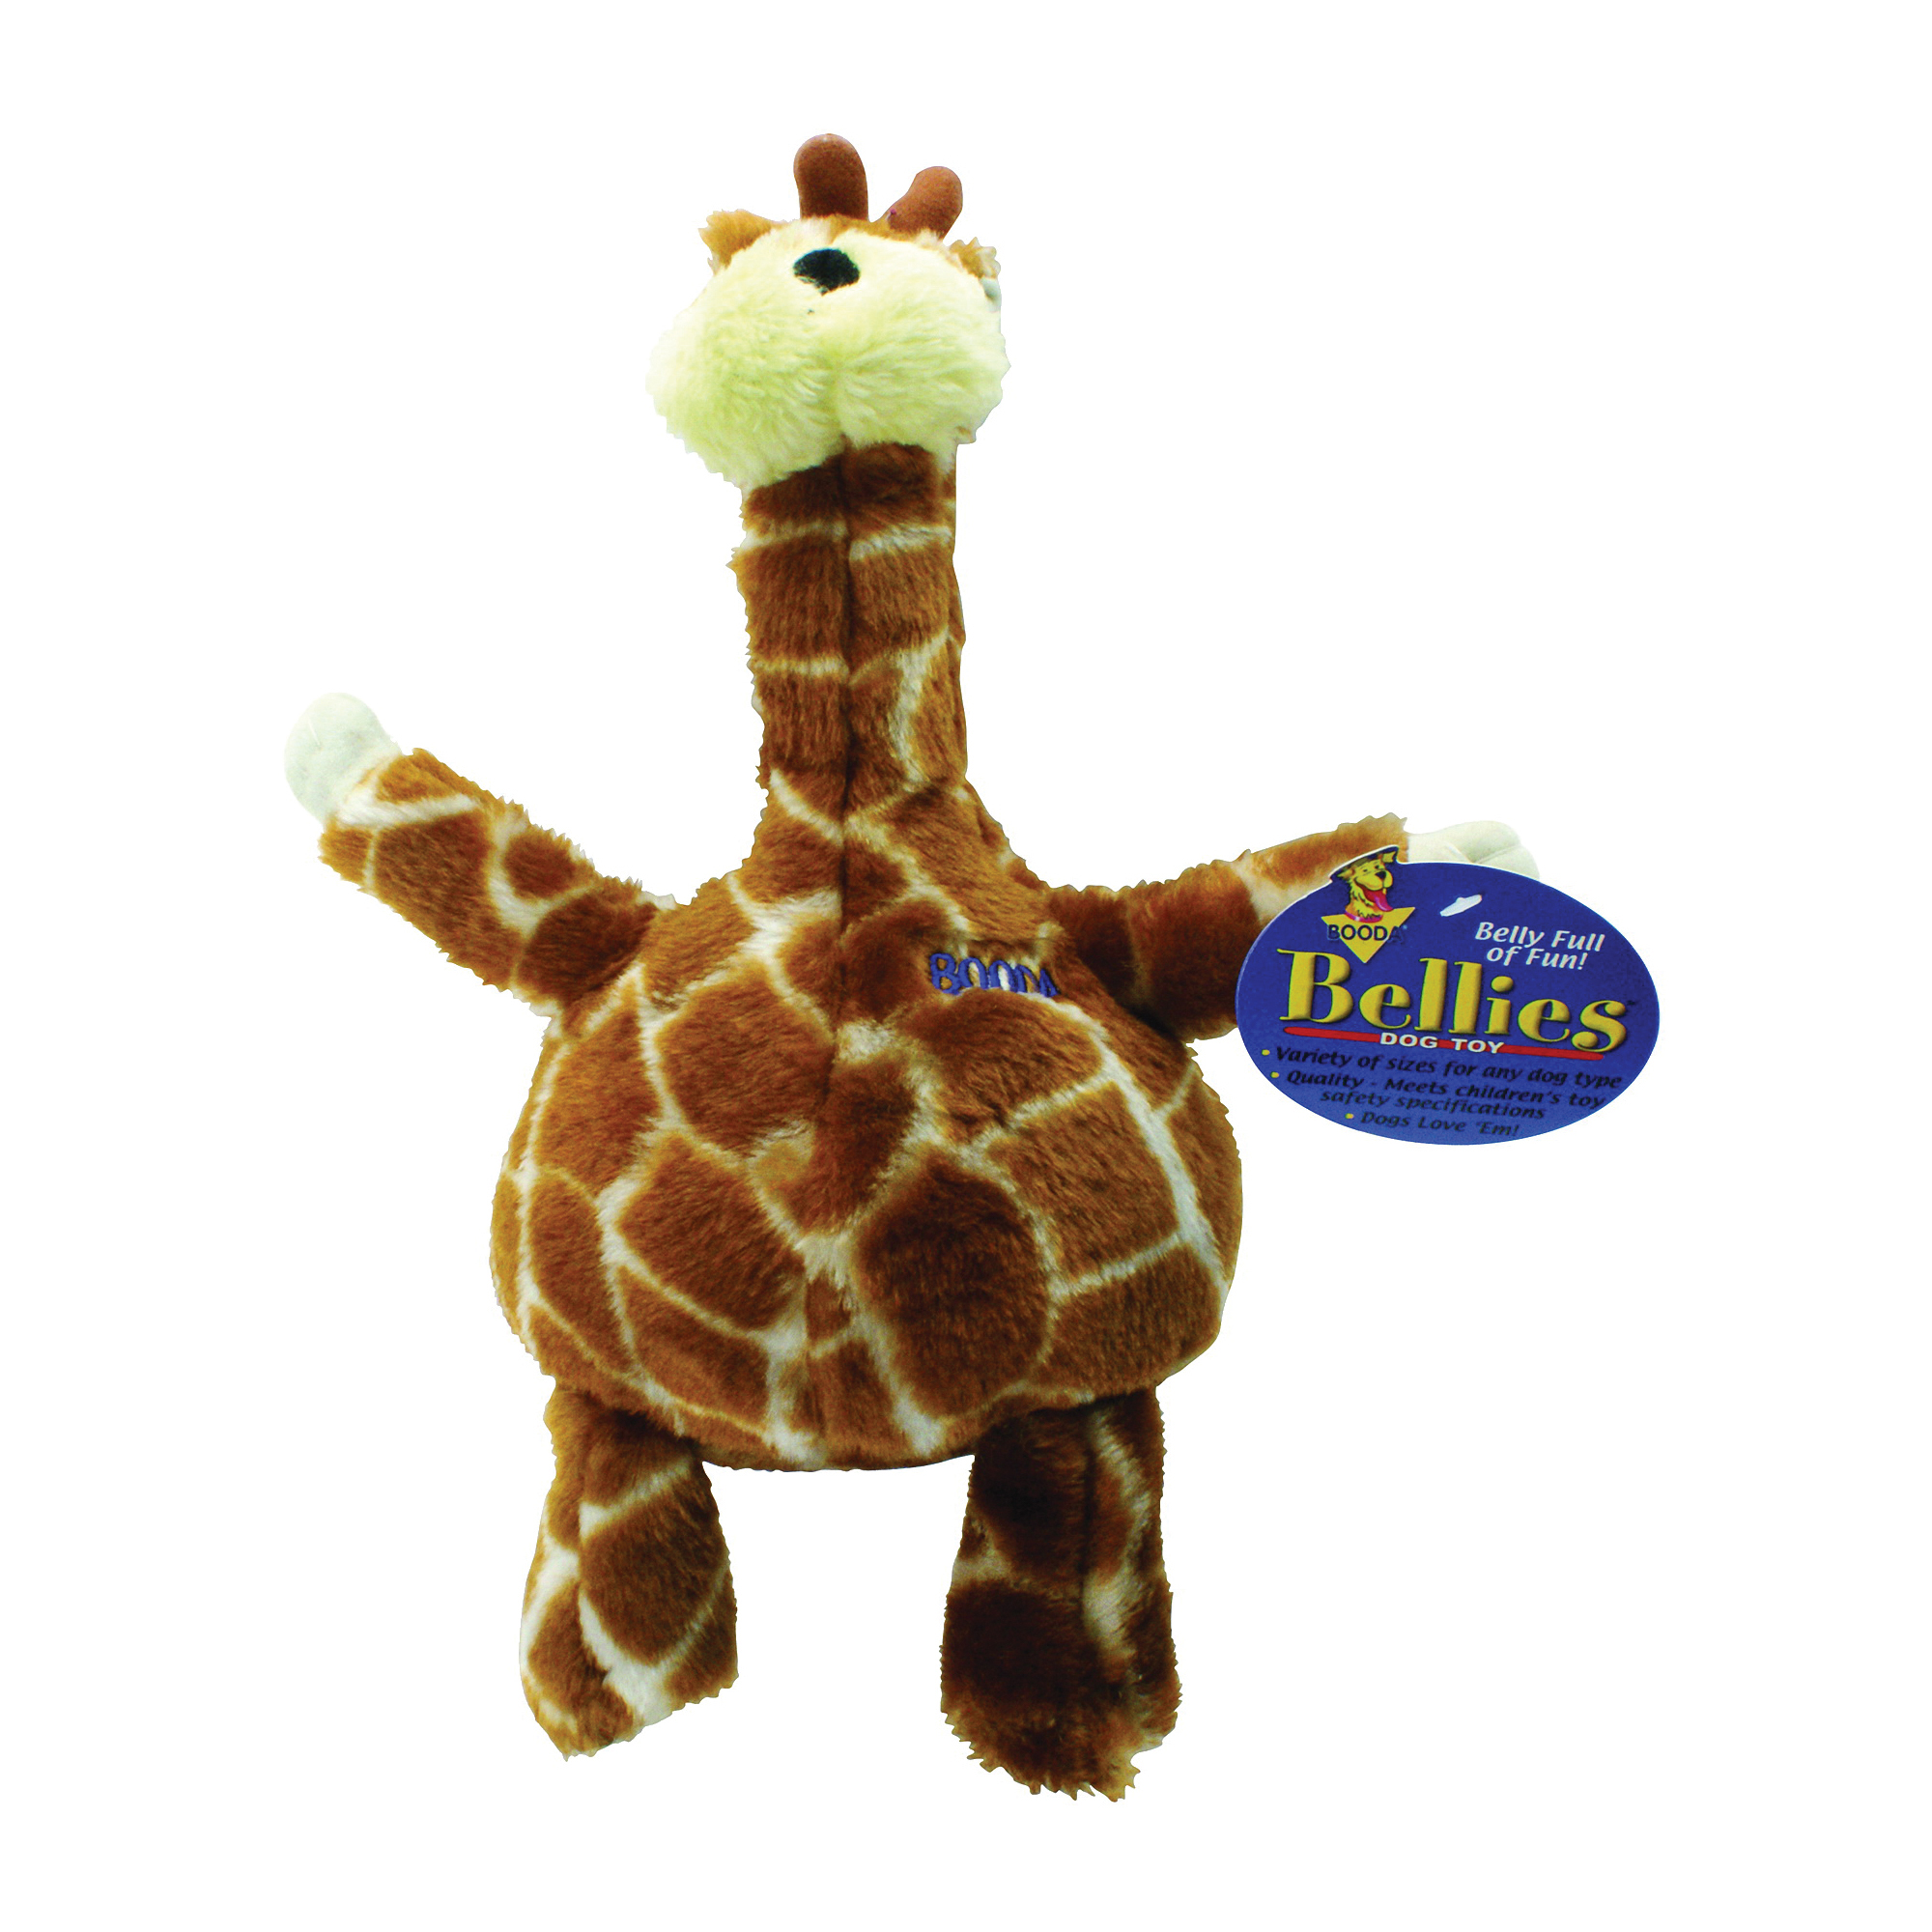 Picture of booda 54272 Plush Dog Toy, XL, Bellies Toy, Giraffe, Multi-Color